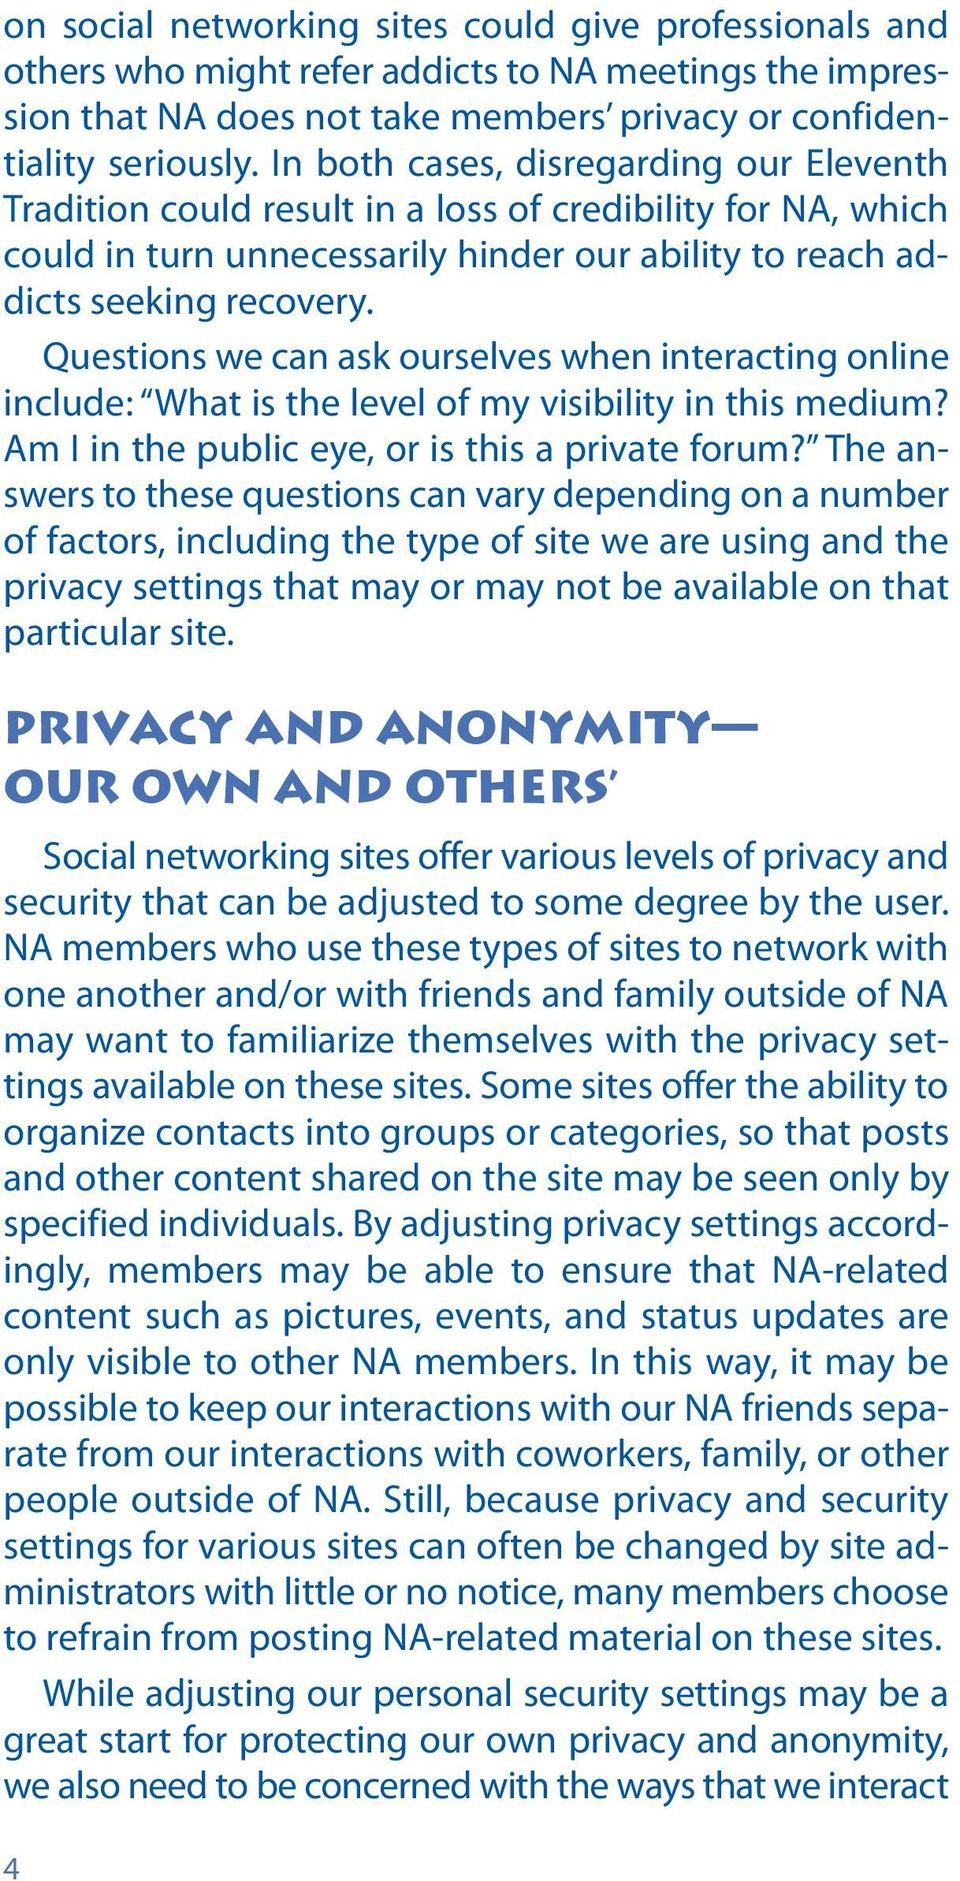 Questions we can ask ourselves when interacting online include: What is the level of my visibility in this medium? Am I in the public eye, or is this a private forum?